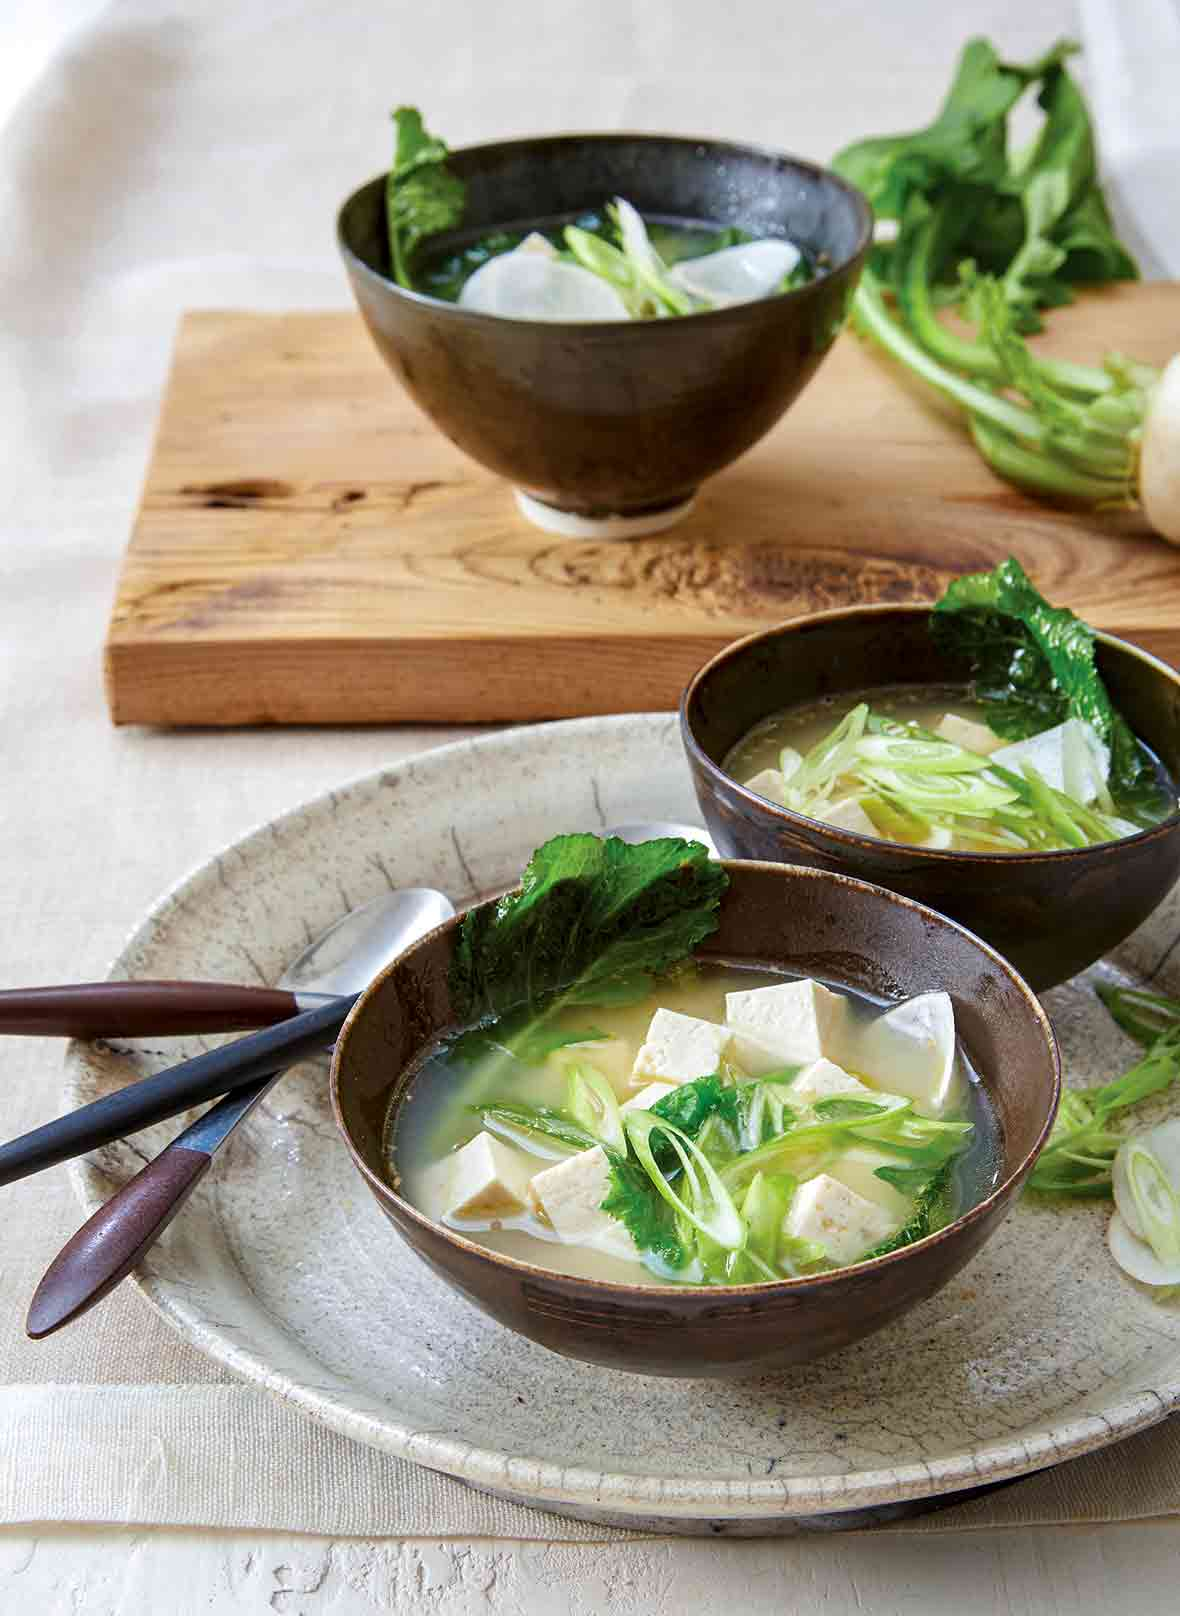 Two bowls of ginger miso soup with tofu, turnip greens, and miso broth